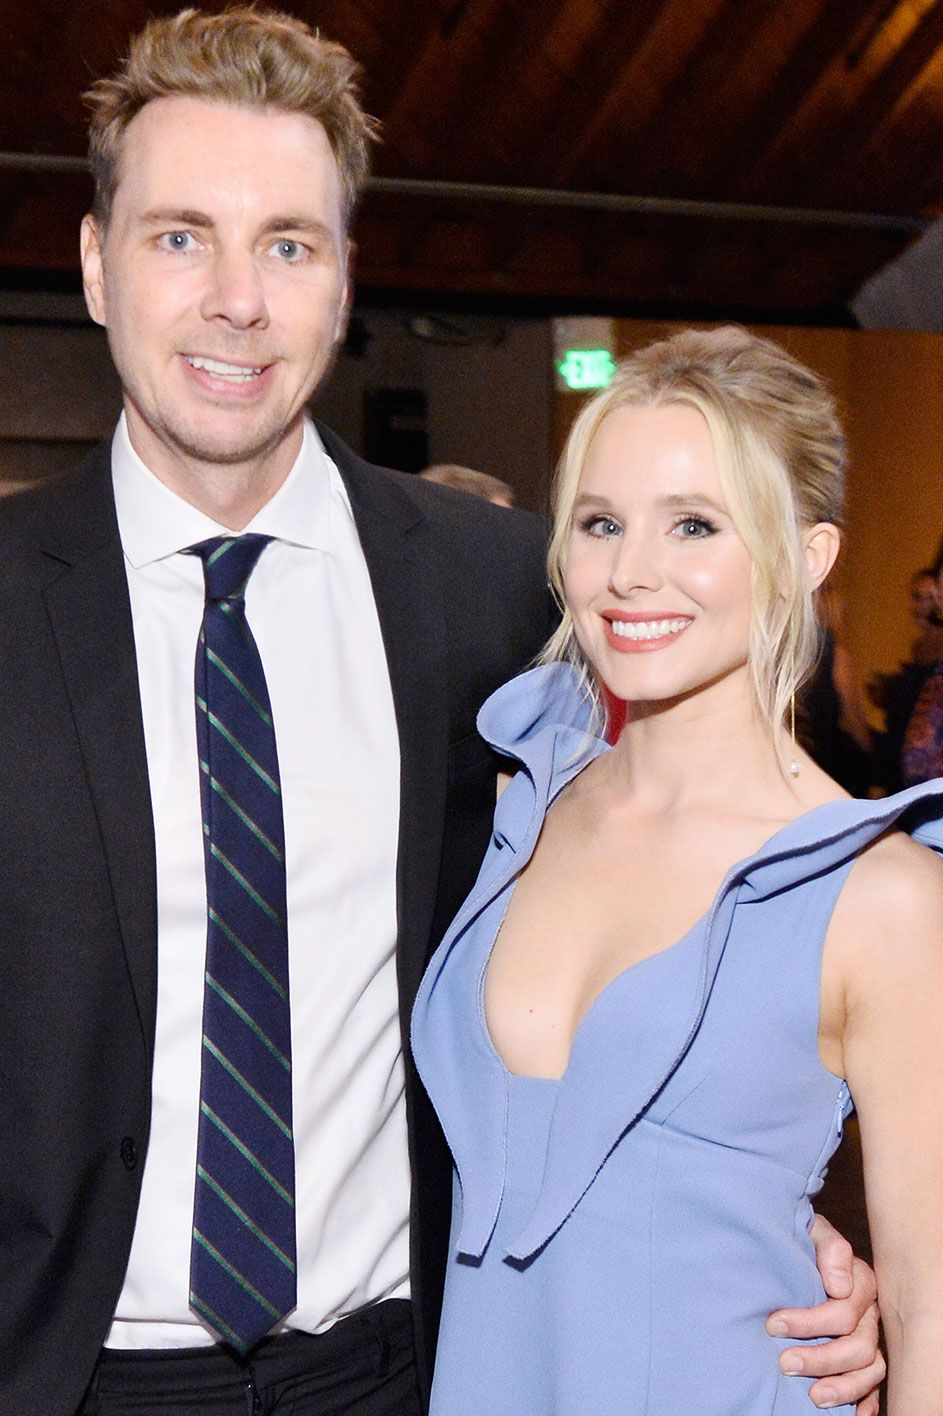 Kristen Bell and Dax Shepard They're a funny pair, and not just because they have similar facial features. Their chemistry is as undeniable as their resemblance.